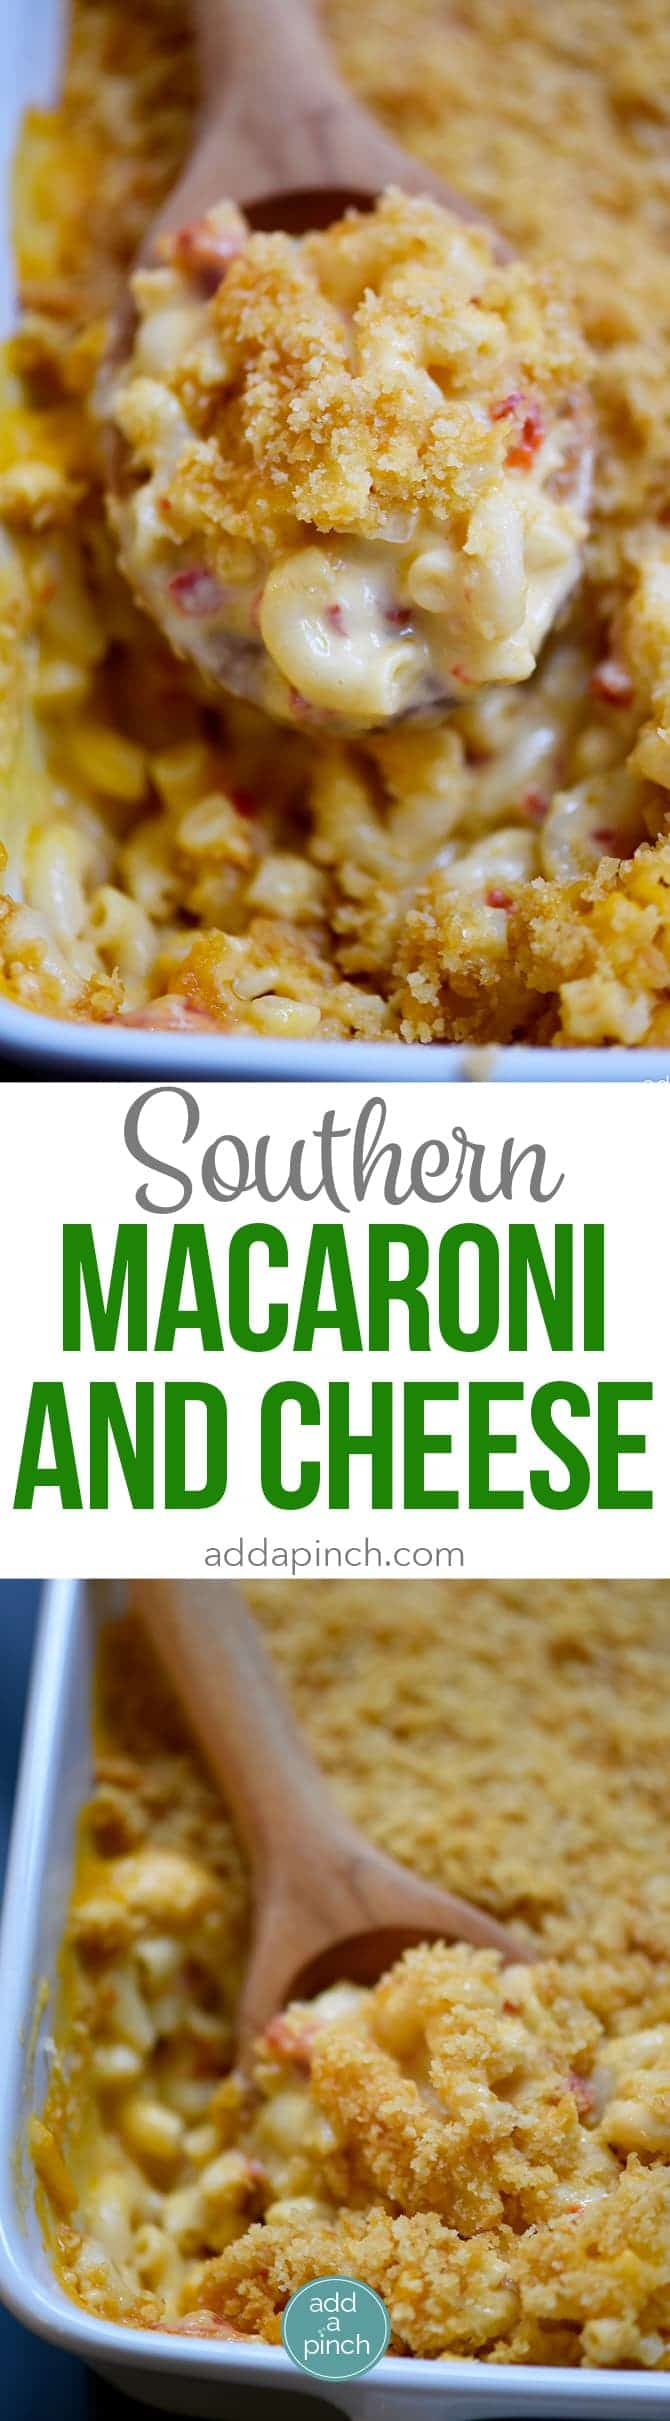 Southern Macaroni and Cheese Recipe - Macaroni and cheese makes a classic dish everyone loves. Make-ahead and freezer friendly! // addapinch.com